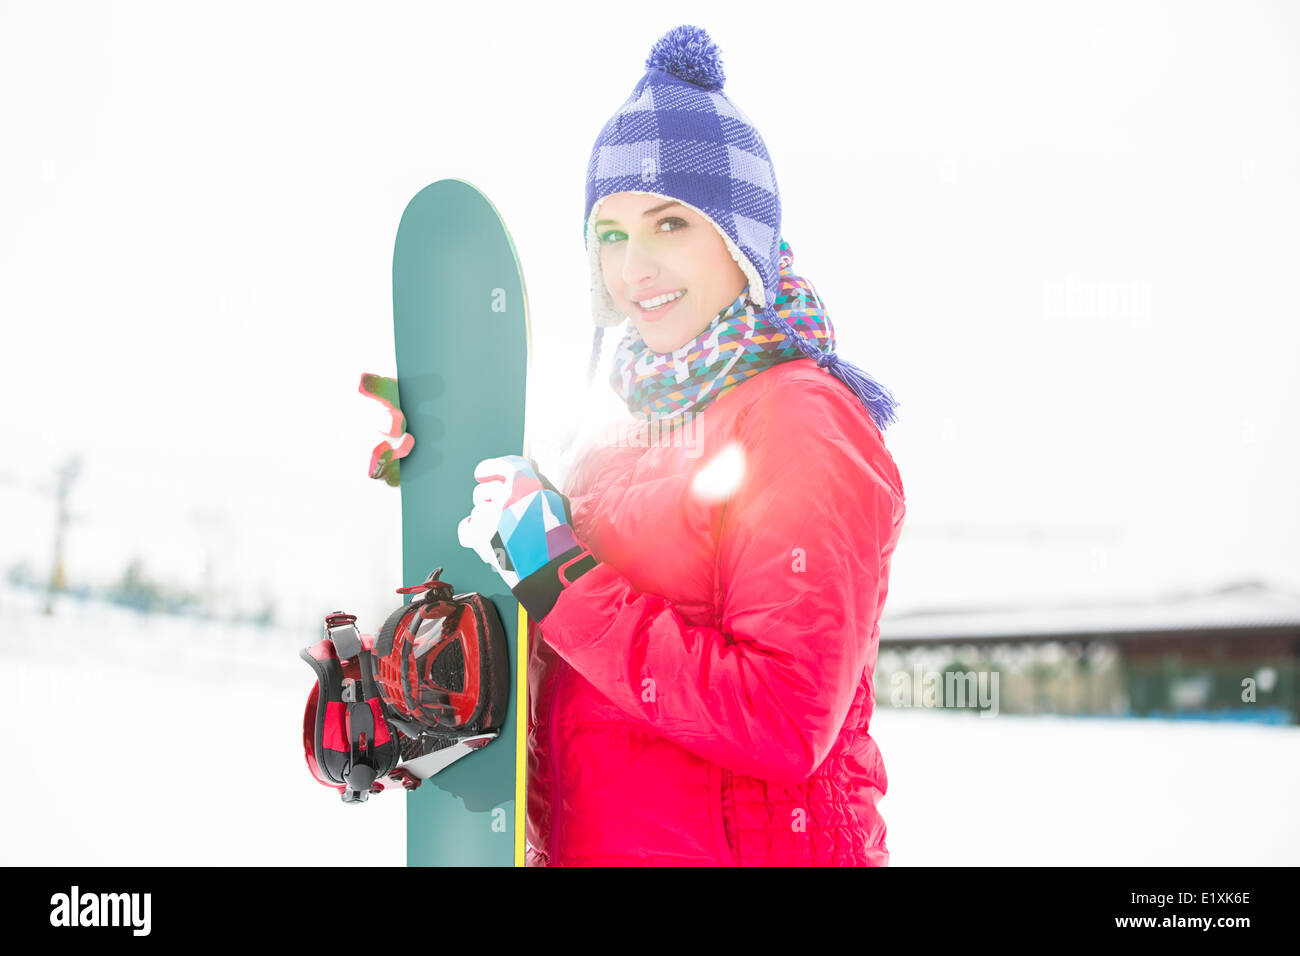 Portrait of beautiful young woman holding snowboard in snow - Stock Image